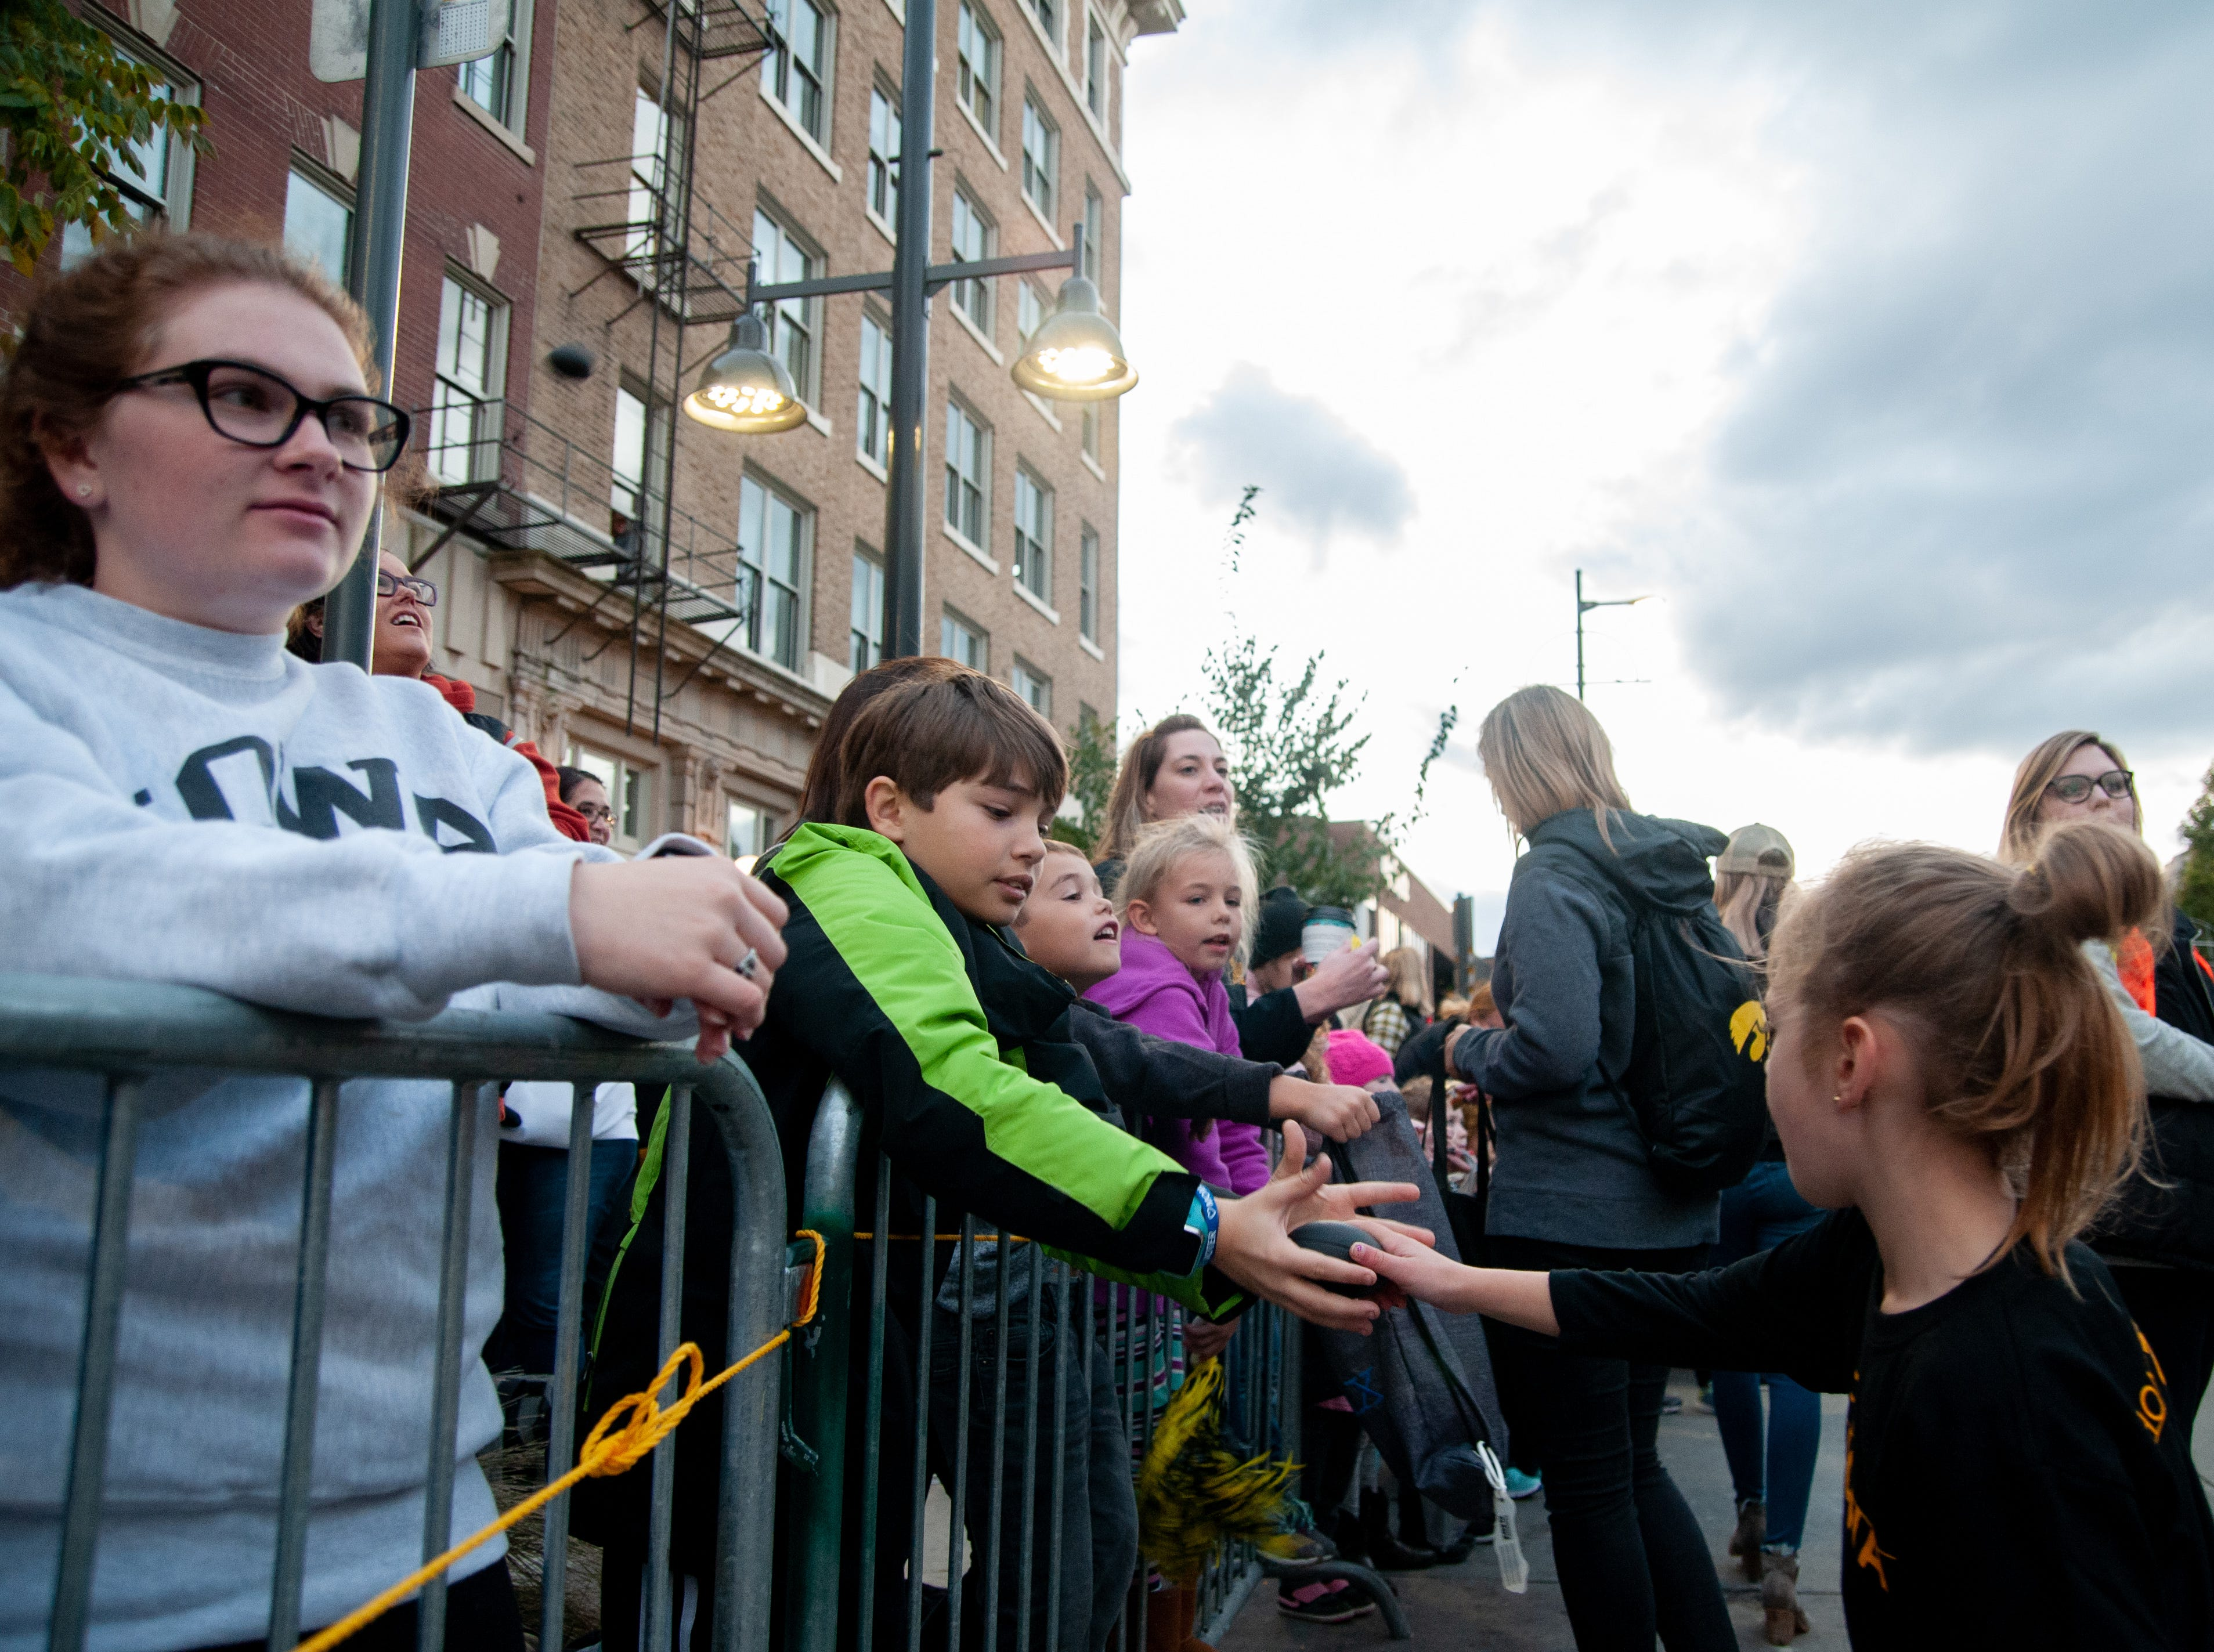 Henry Vanscoyk, 10, receives a foam football during the 2018 Homecoming parade, Friday, Oct. 19, 2018, in Iowa City.